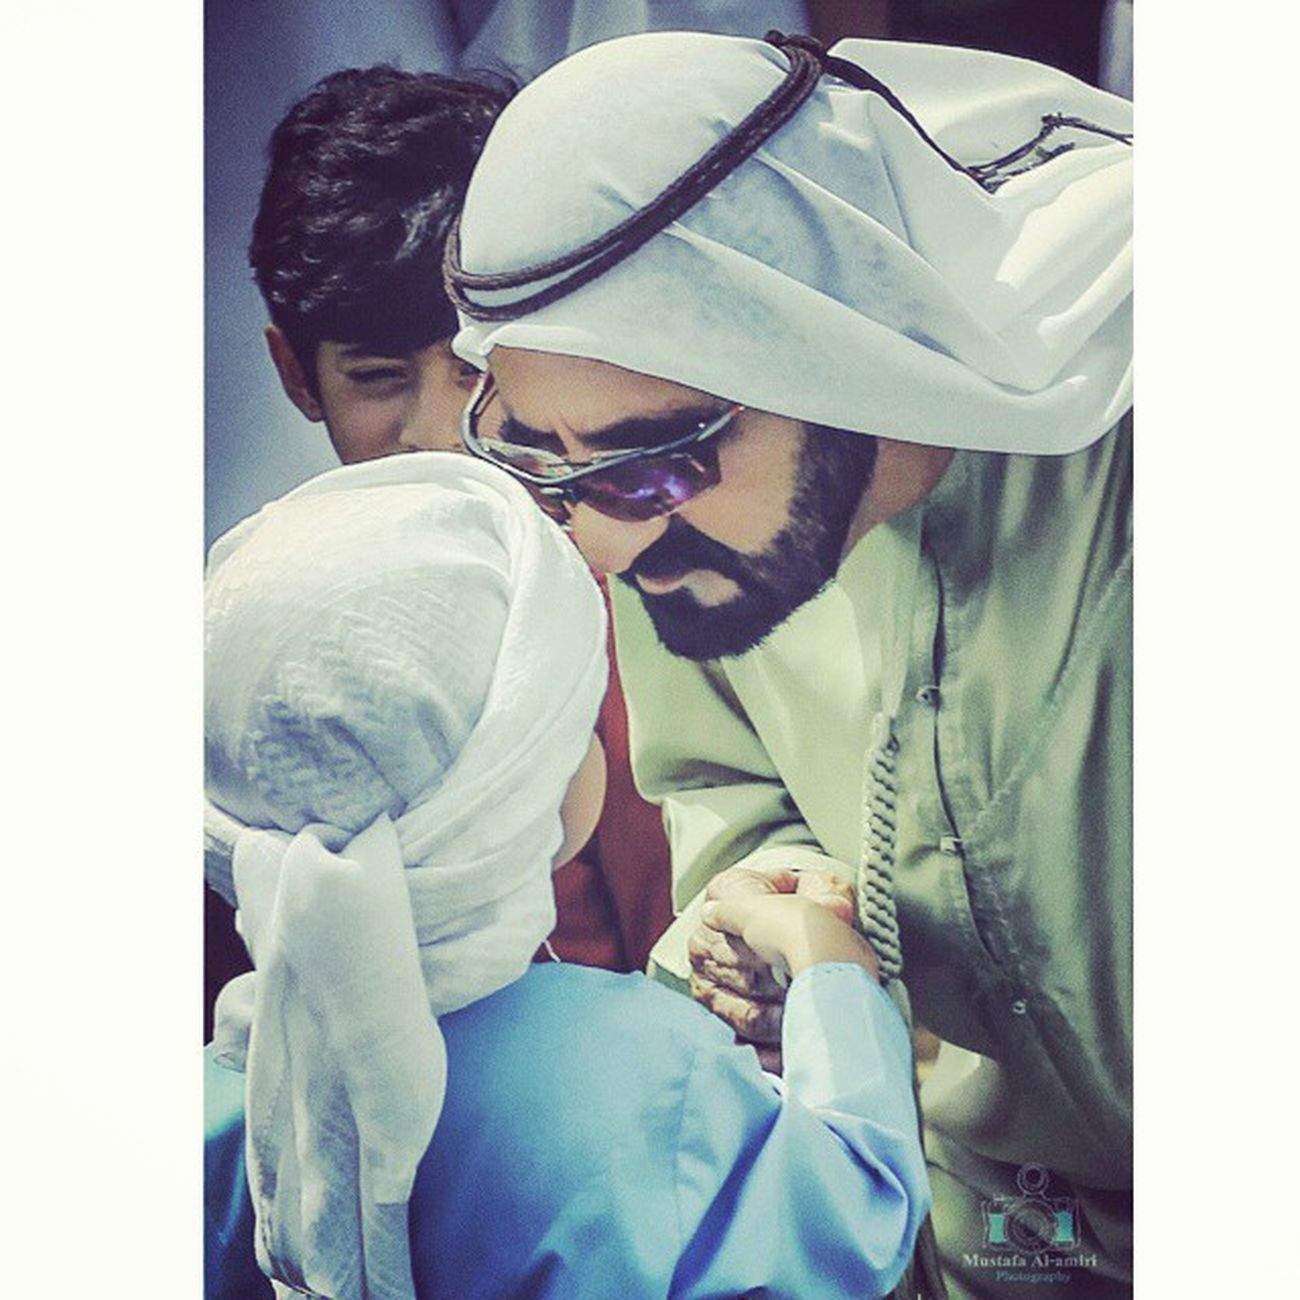 Father Tenderness 😍 Photo By Mustafa Alamiri 19.03.2015 ◾◾◾◾◾◾◾◾ My Photography Instadubai UAE Dubai Fazza3 F3 Hamdan Hamdan_bin_mohammed الامارات Hhshkmohd Mydubai الشيخ DXB Crown_Prince Hamdanbinmohammed MyUAE Crownprinceofdubai دبي Fazza Fazzaforum Emirate Hmrm Follow Fansfazza3_indo Almaktoum World abudhabi faza3 ولي_عهد repost group63